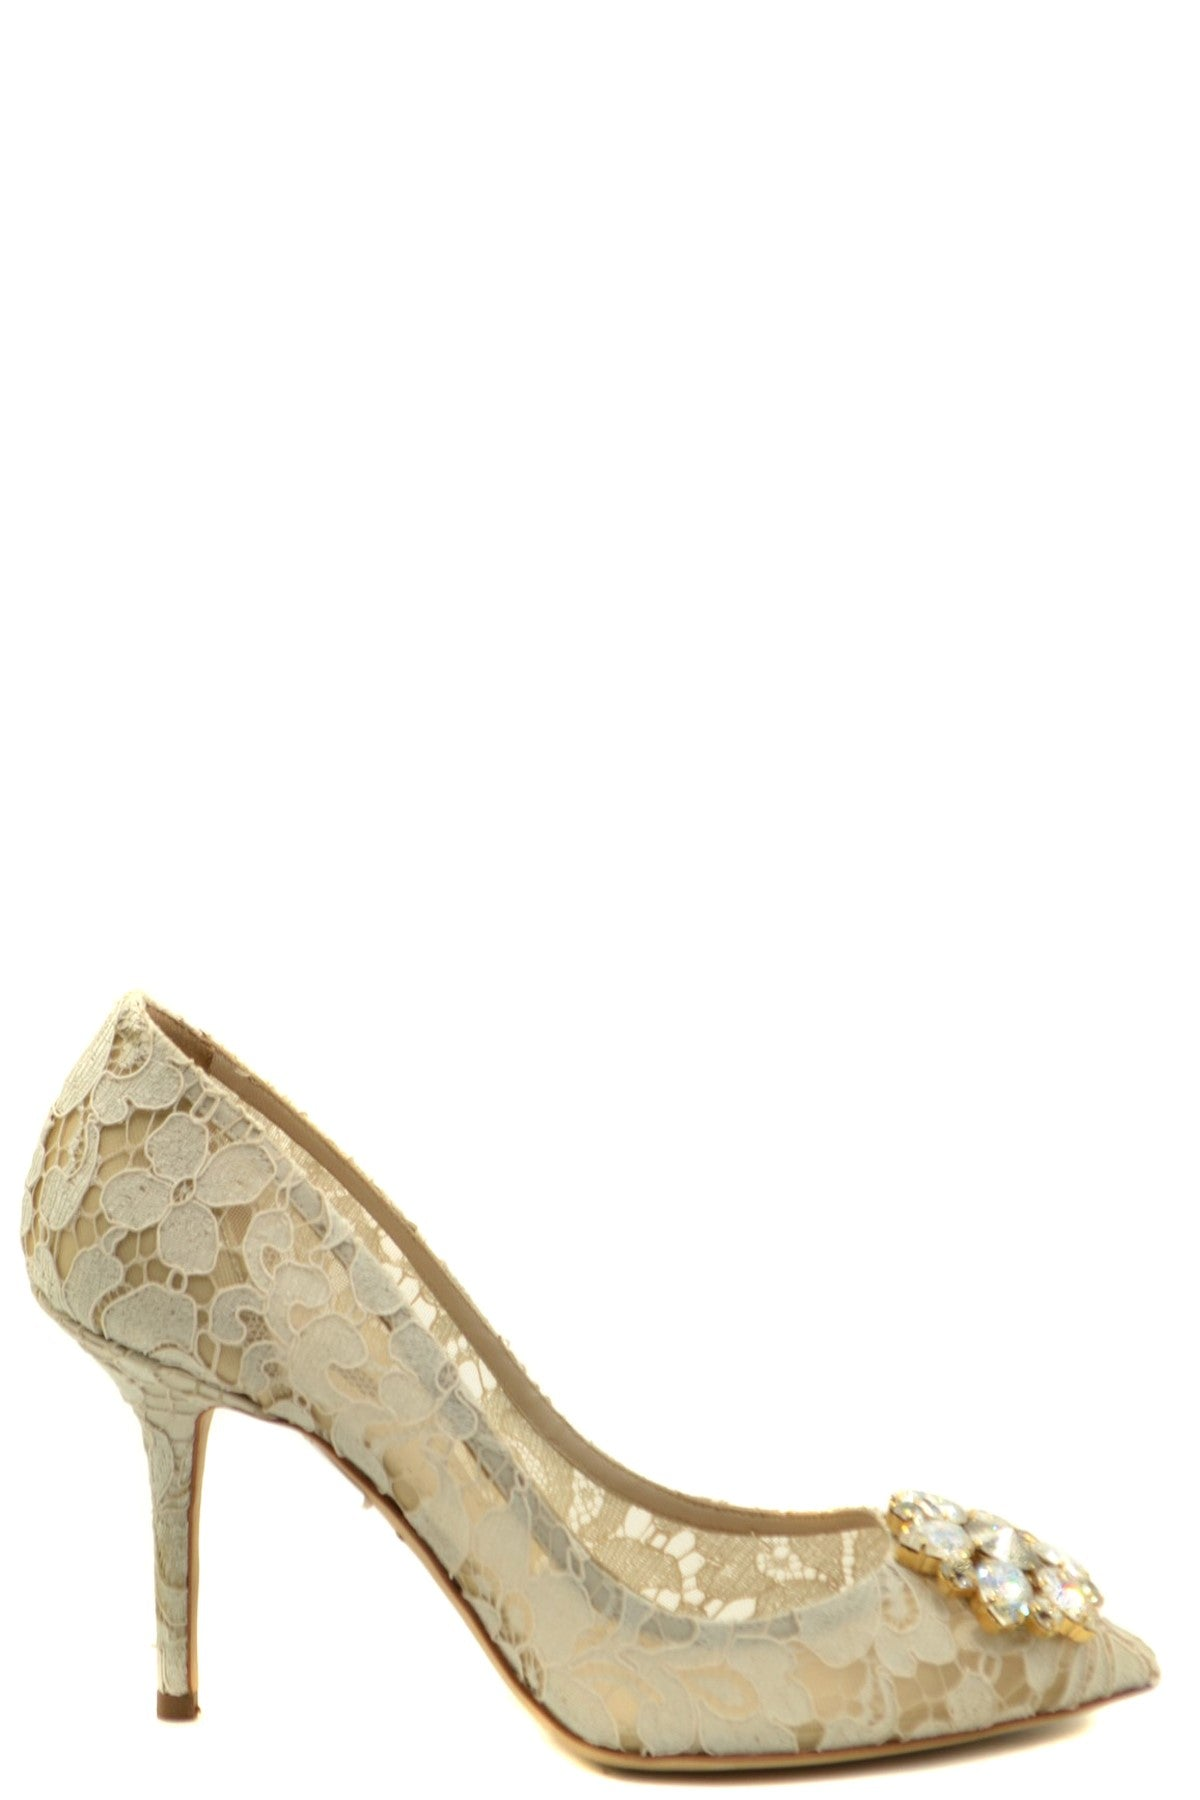 Shoes Dolce & Gabbana--Product Details Terms: New With LabelMain Color: CreamType Of Accessory: ShoesSeason: Spring / SummerMade In: ItalyGender: WomanHeel'S Height: 10Size: EuComposition: Tissue 100%Year: 2020Manufacturer Part Number: Cd0101 Al198 80005-Keyomi-Sook